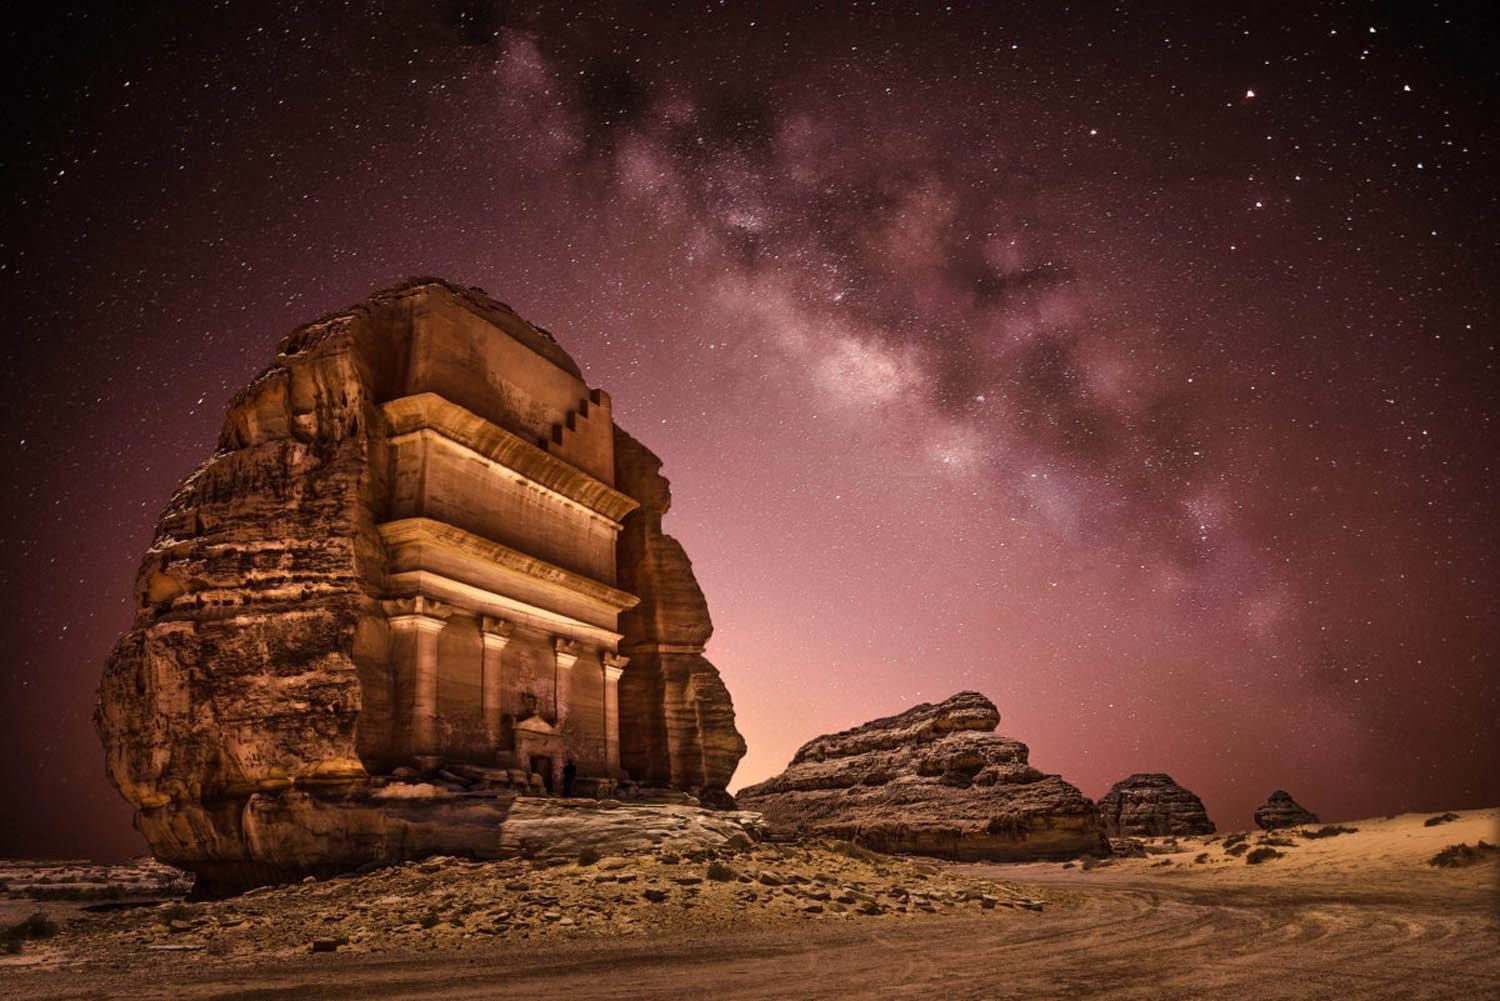 WMB Travel Pro alula Saudi Arabia's AlUla opens bookings and unveils new experiences